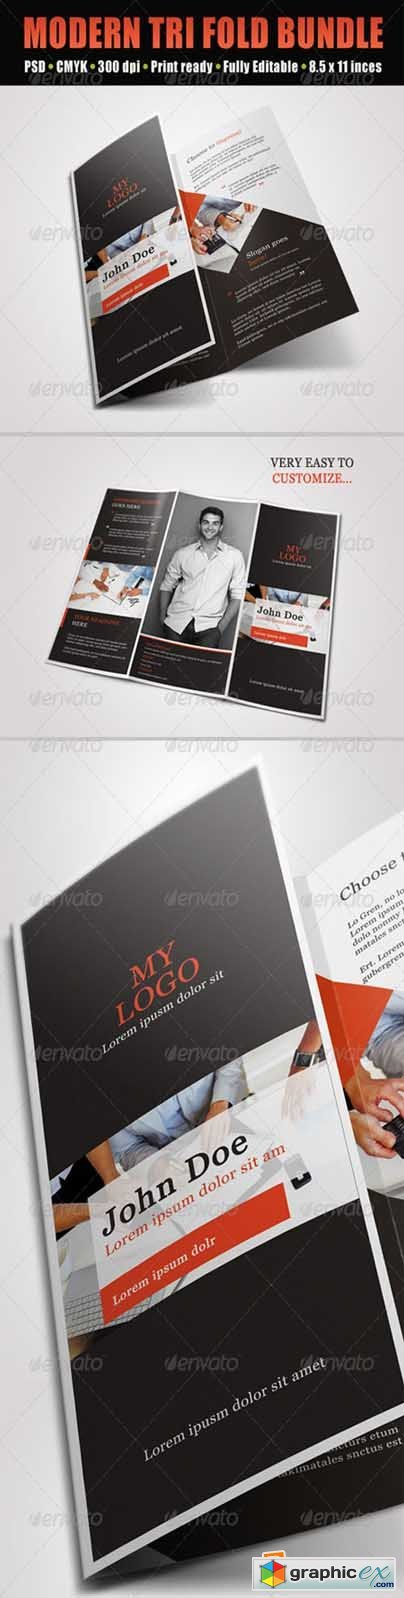 Trifold Brochures Bundle